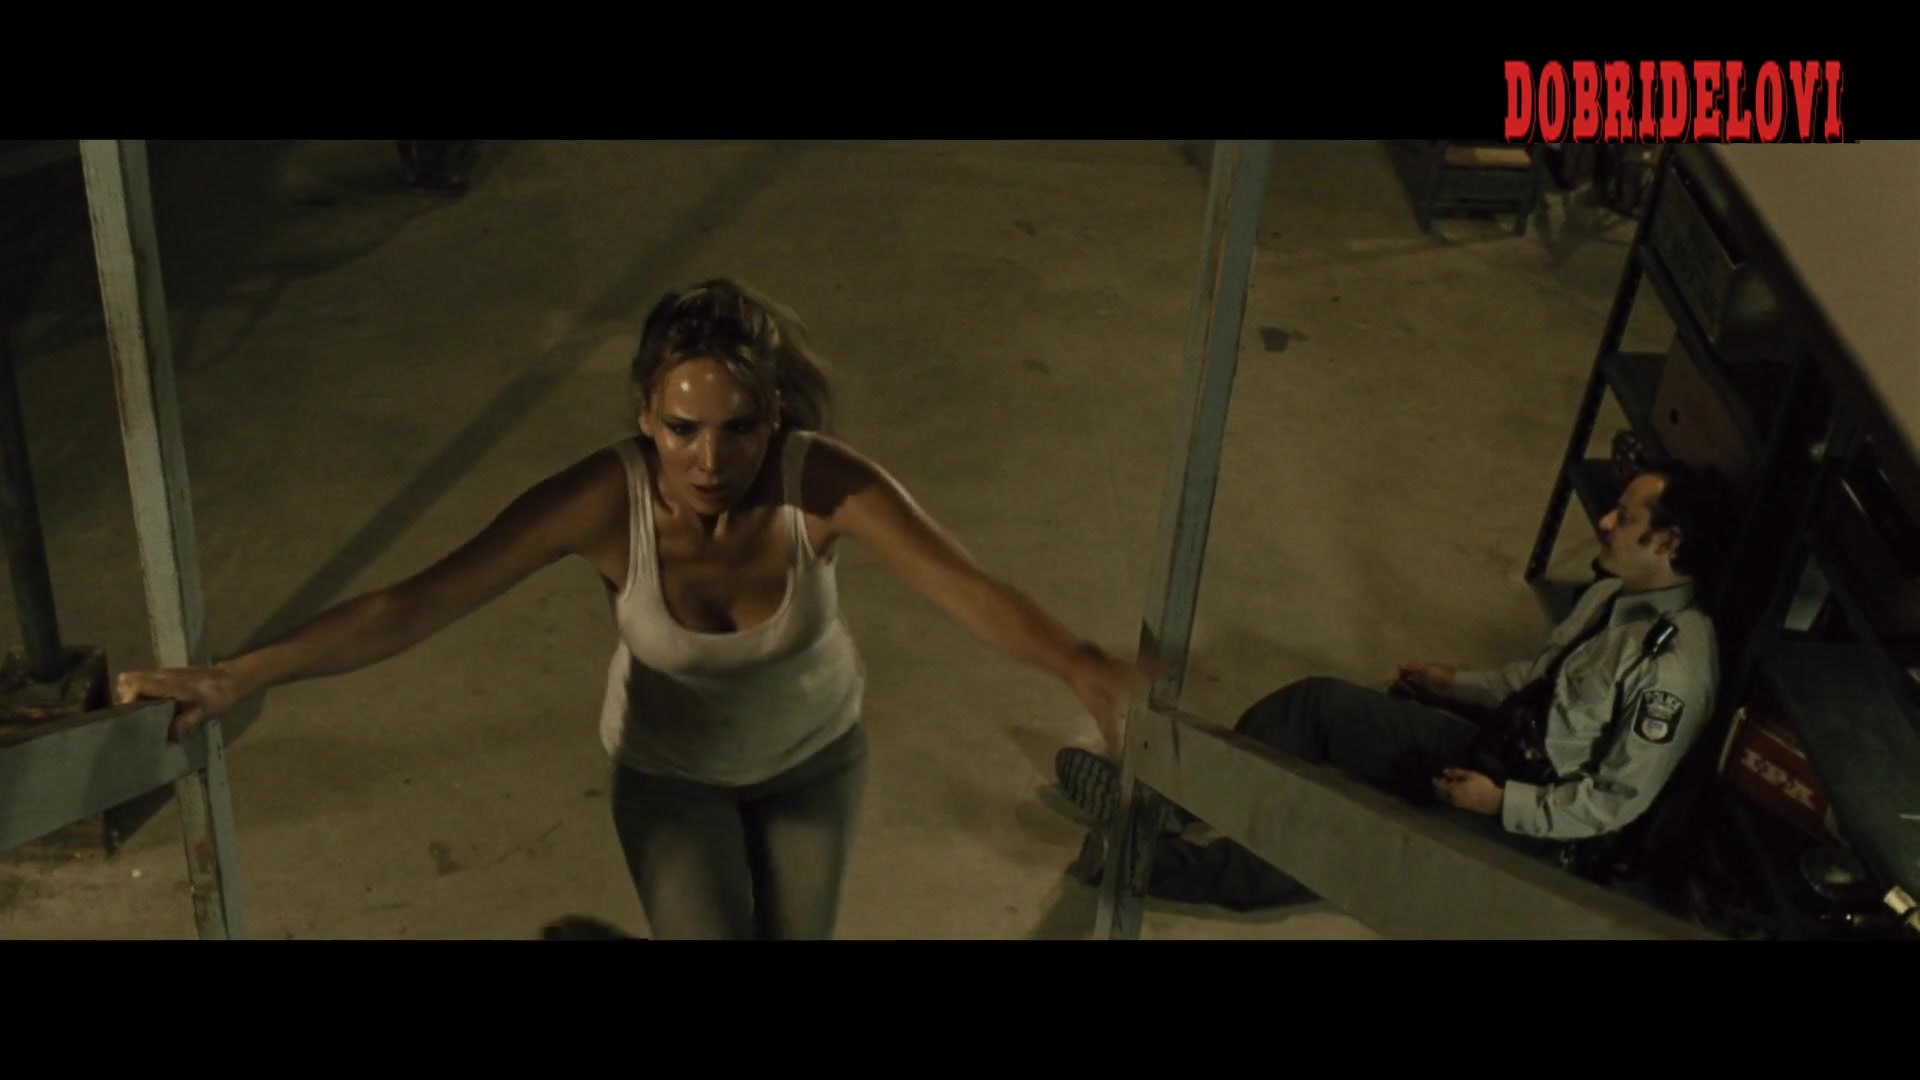 Jennifer Lawrence bouncing boobs running up the stairs